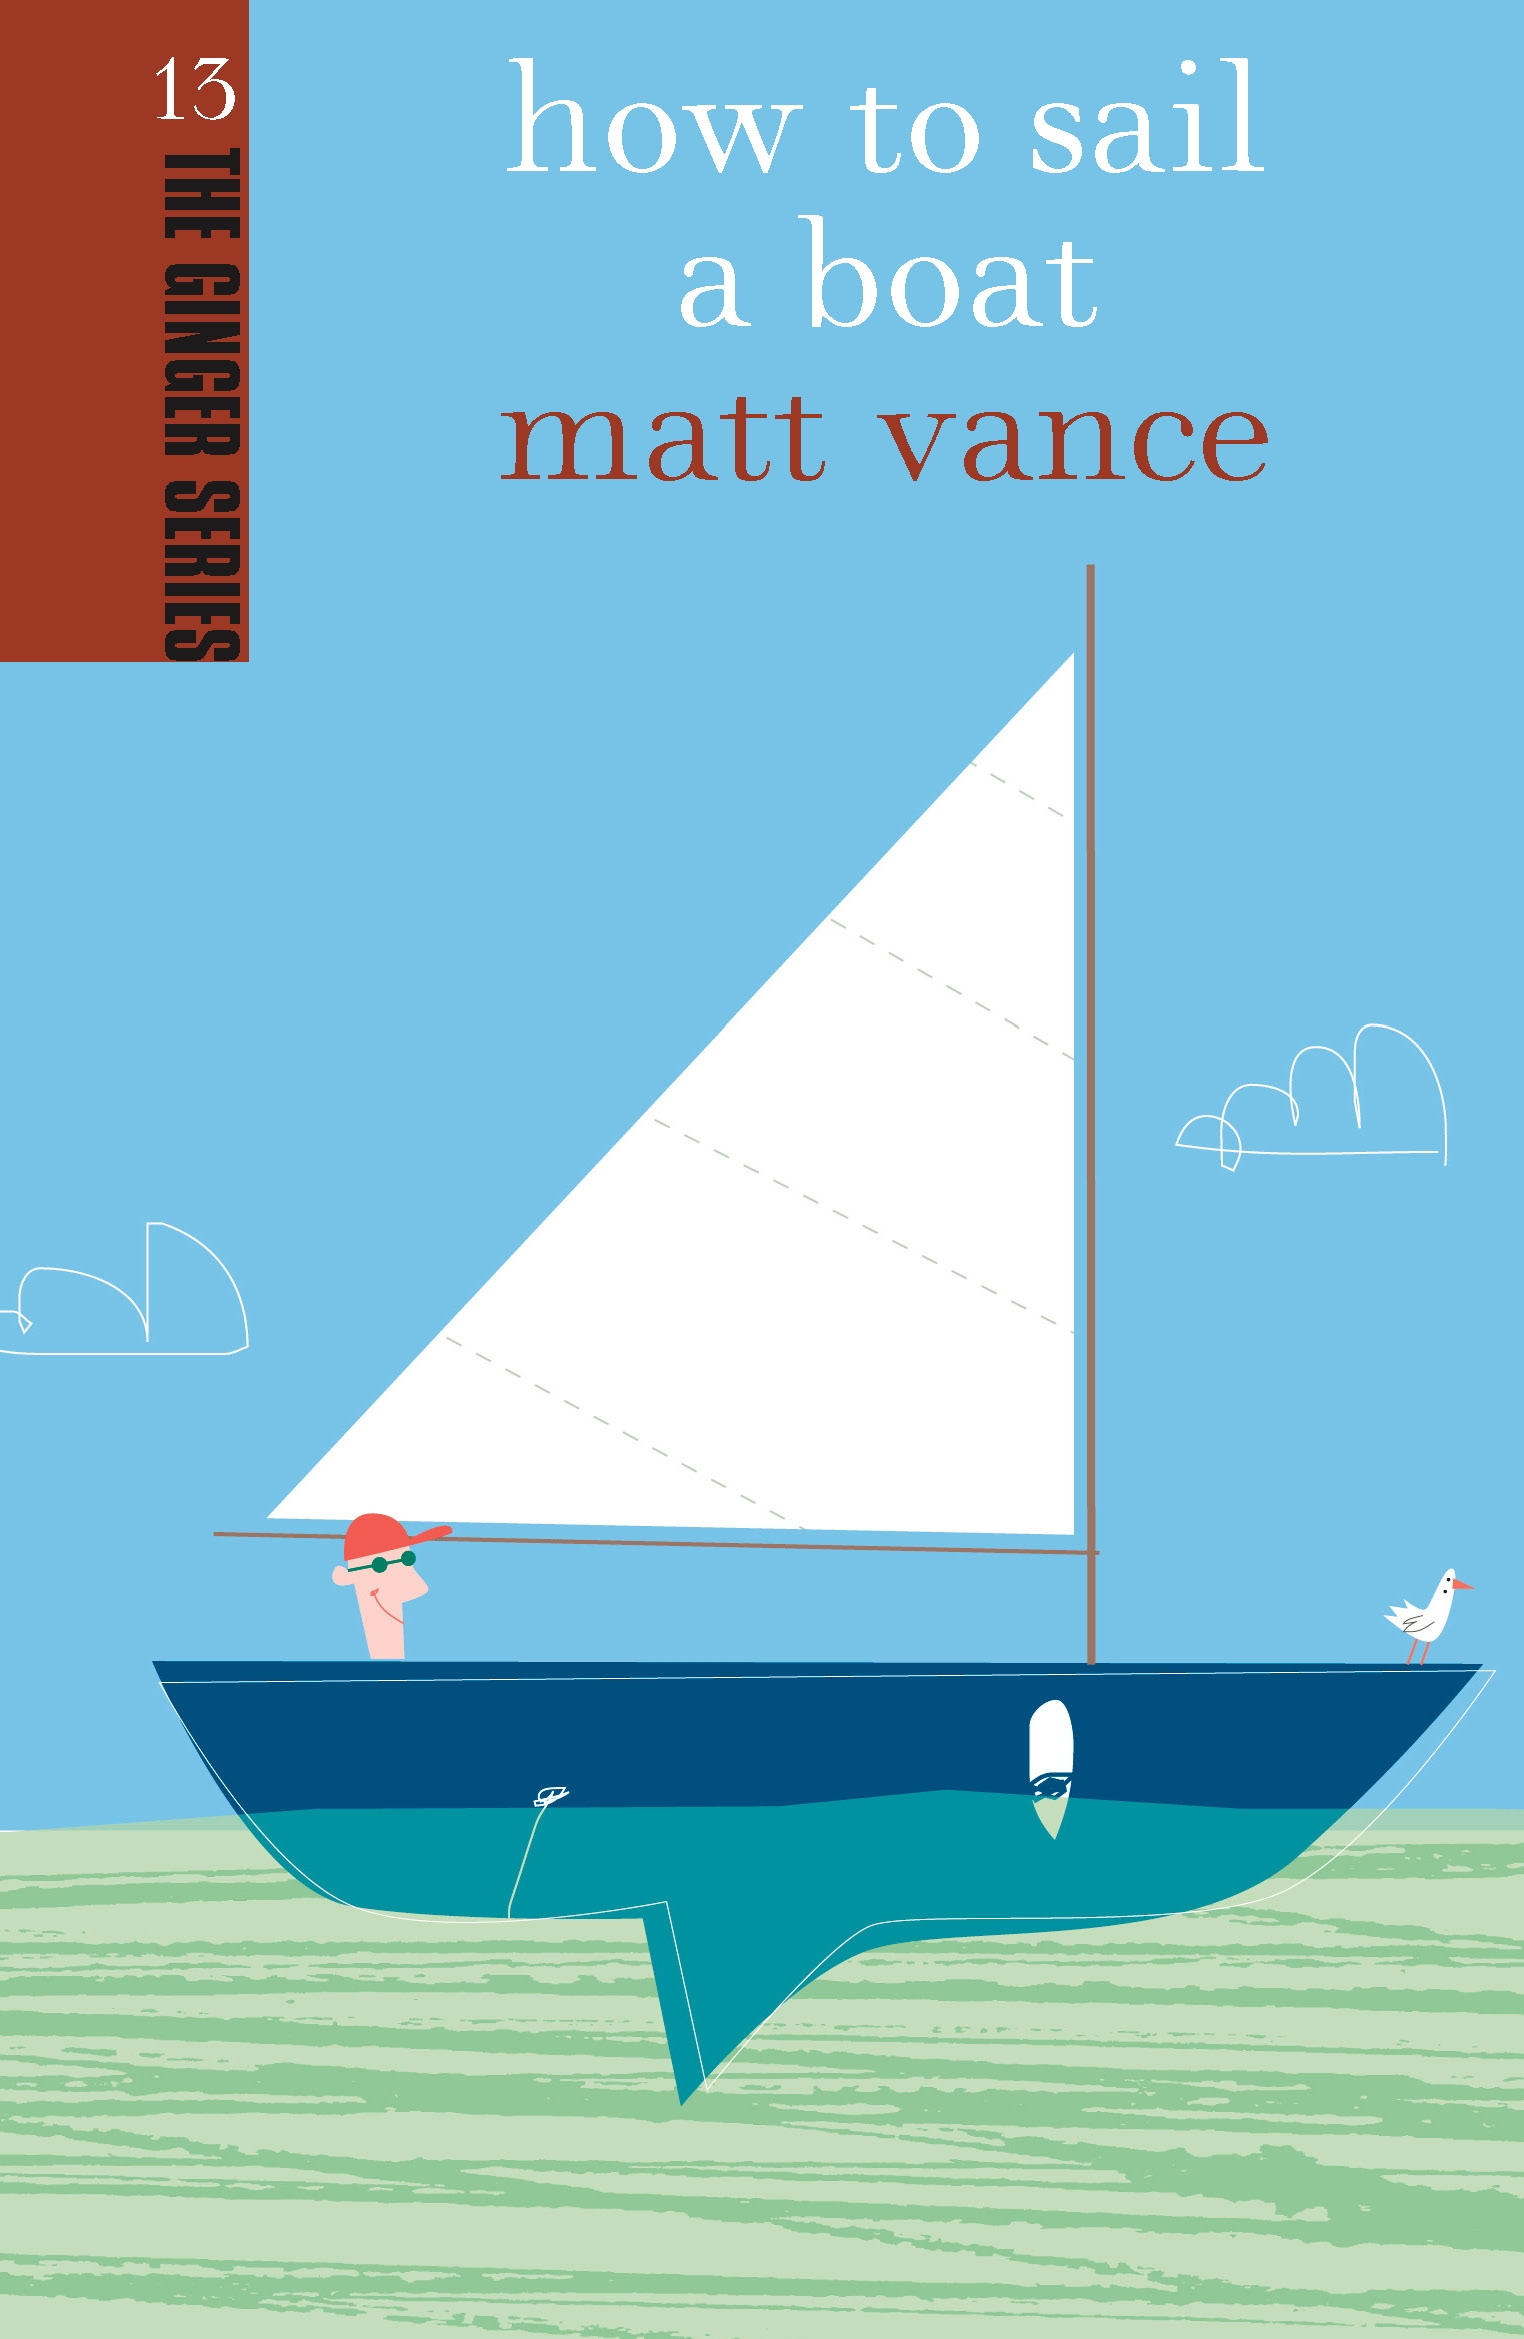 How-to-Sail-a-Boat-Ginger-Series-Vol-13-Vance-Matt